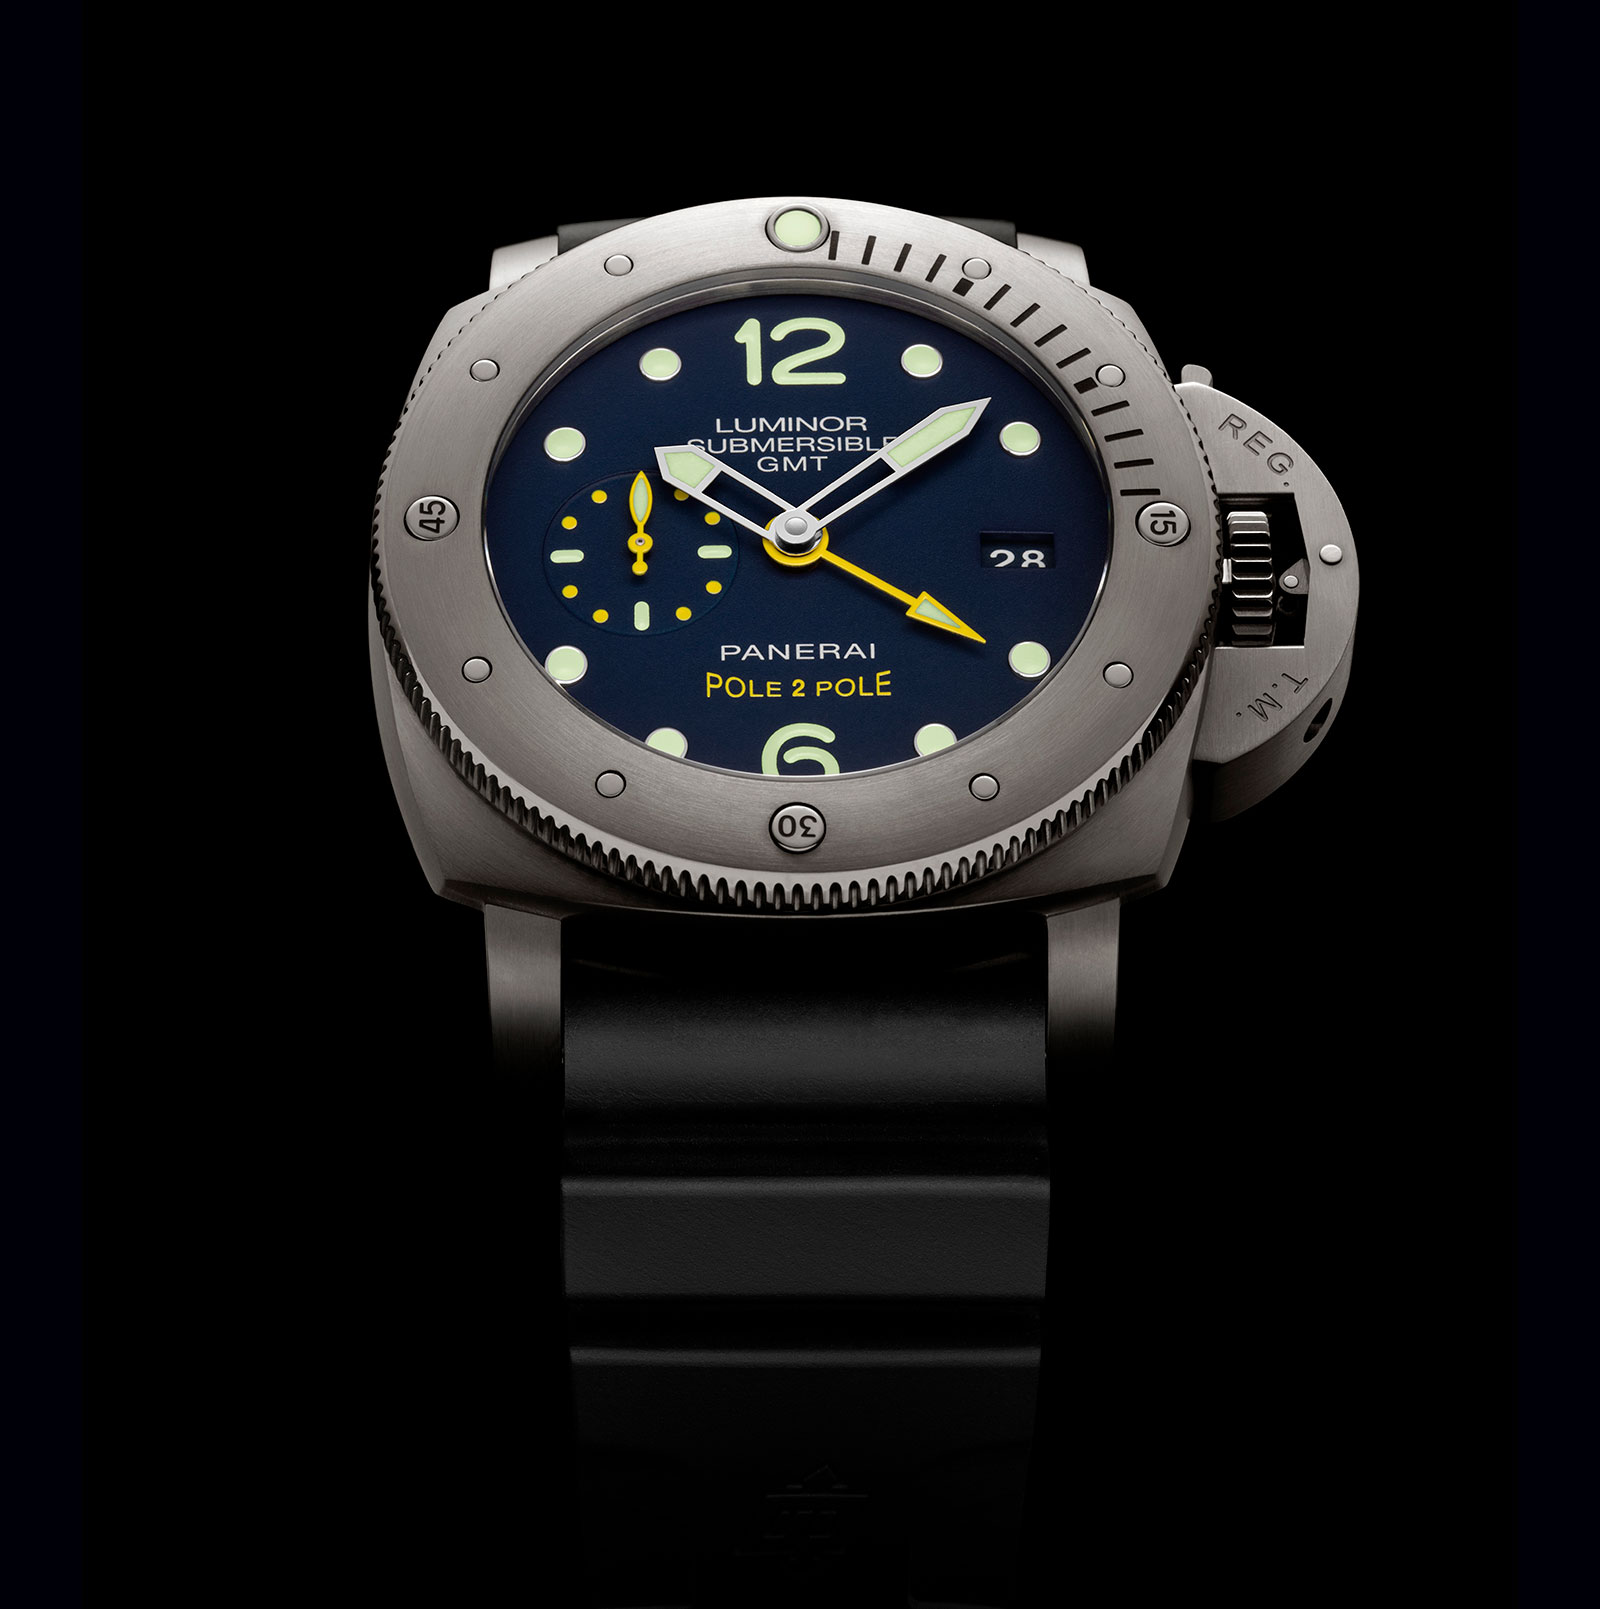 Panerai Luminor Submersible 1950 GMT PAM719 Mike Horn 2